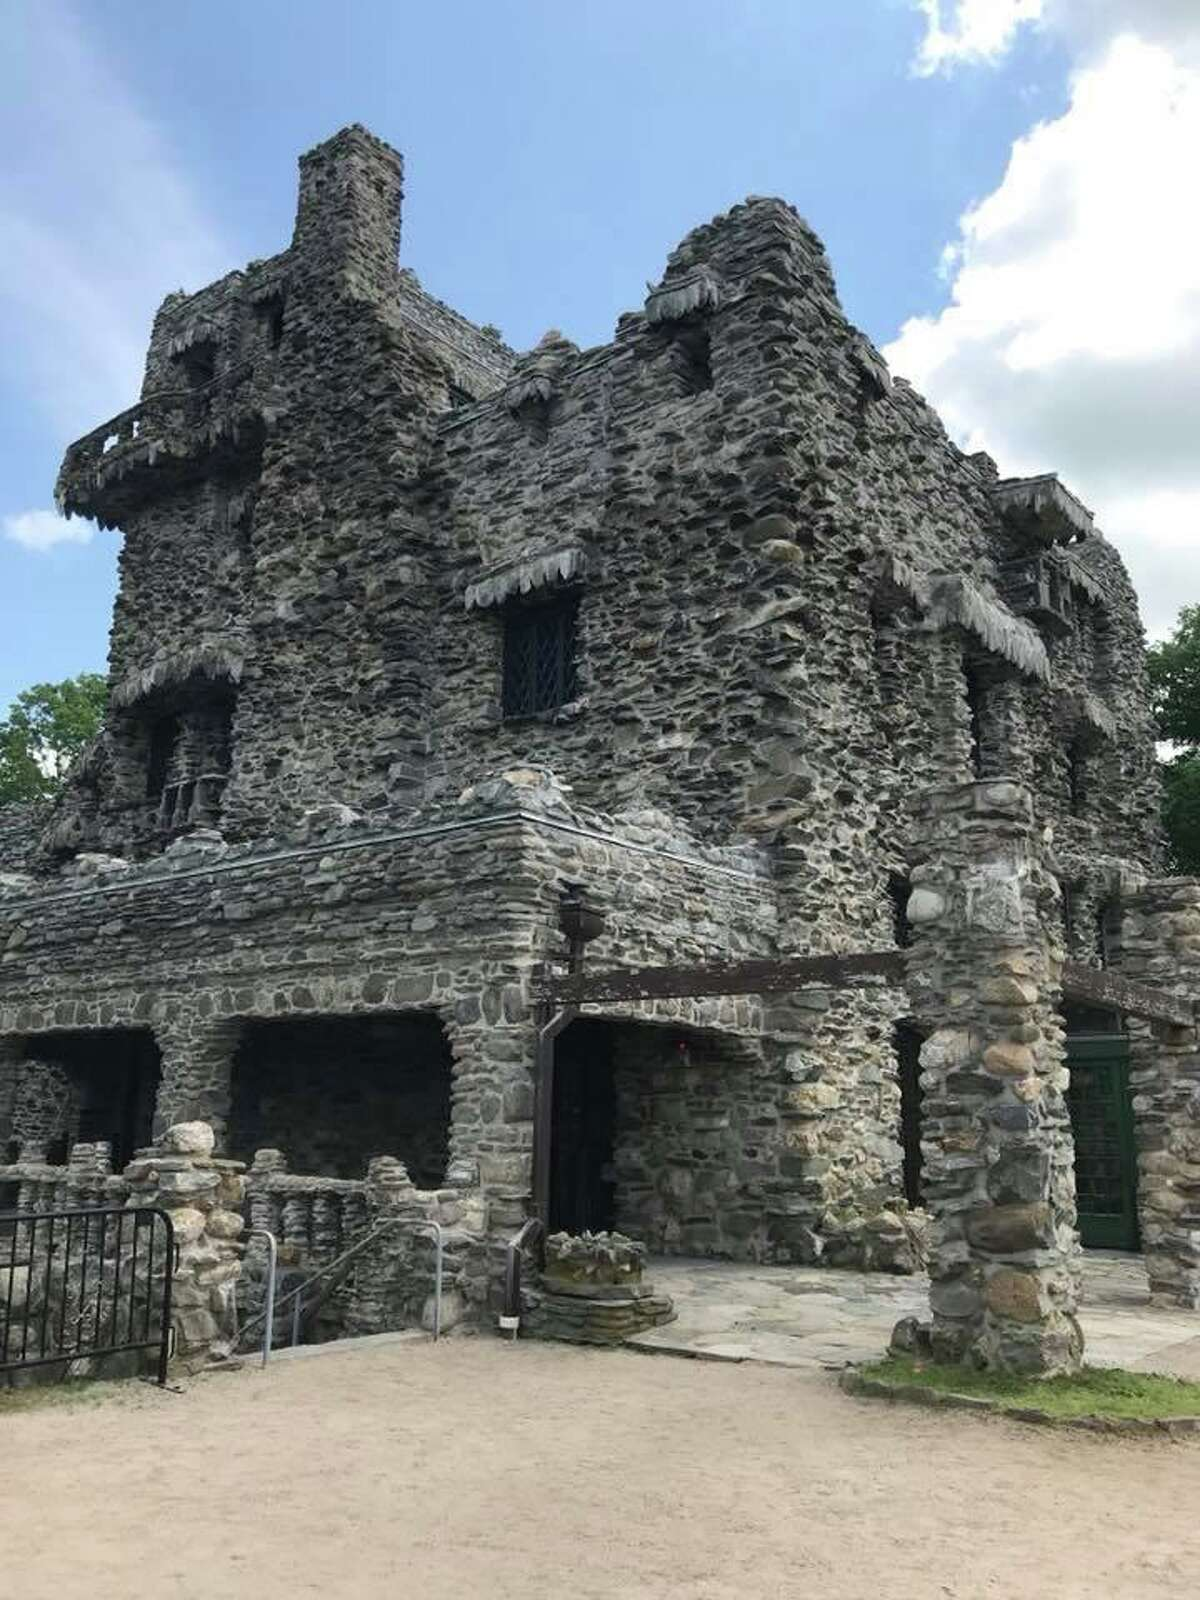 The Friends of Gillette Castle State Park is hosting a 100thAnniversary Speakeasy Gala, Sept. 7 at Gillette Castle.